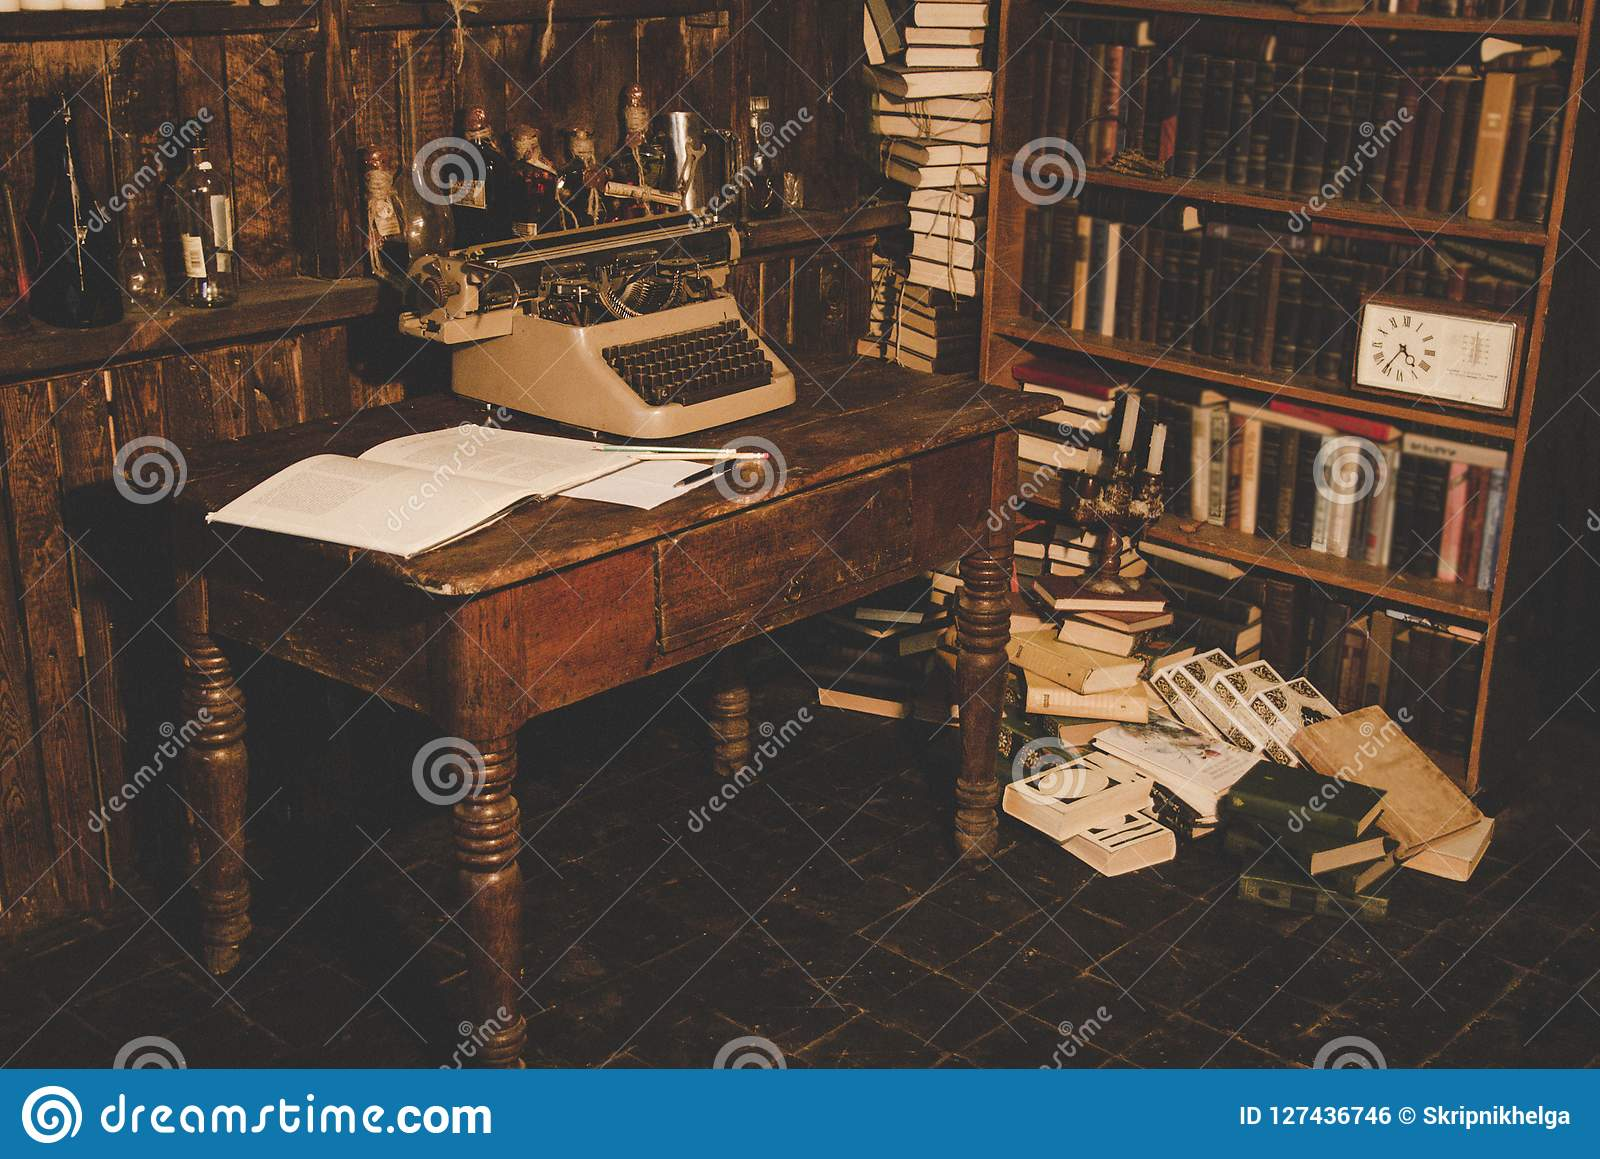 An Old Typewriter Is On The Tablewriters Roomold Books Are On The